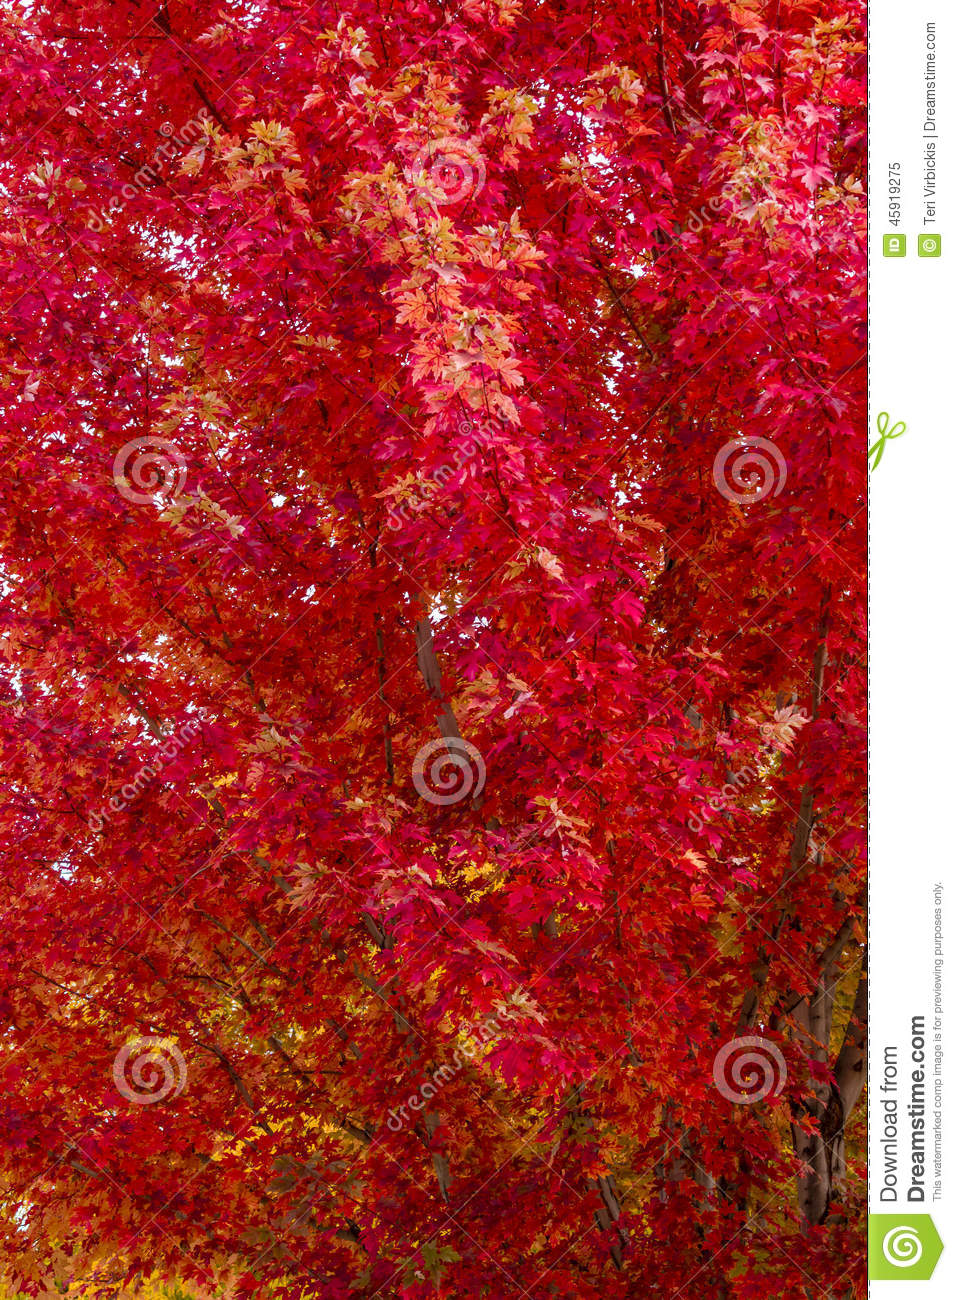 Fall-Farbe in der Stadt